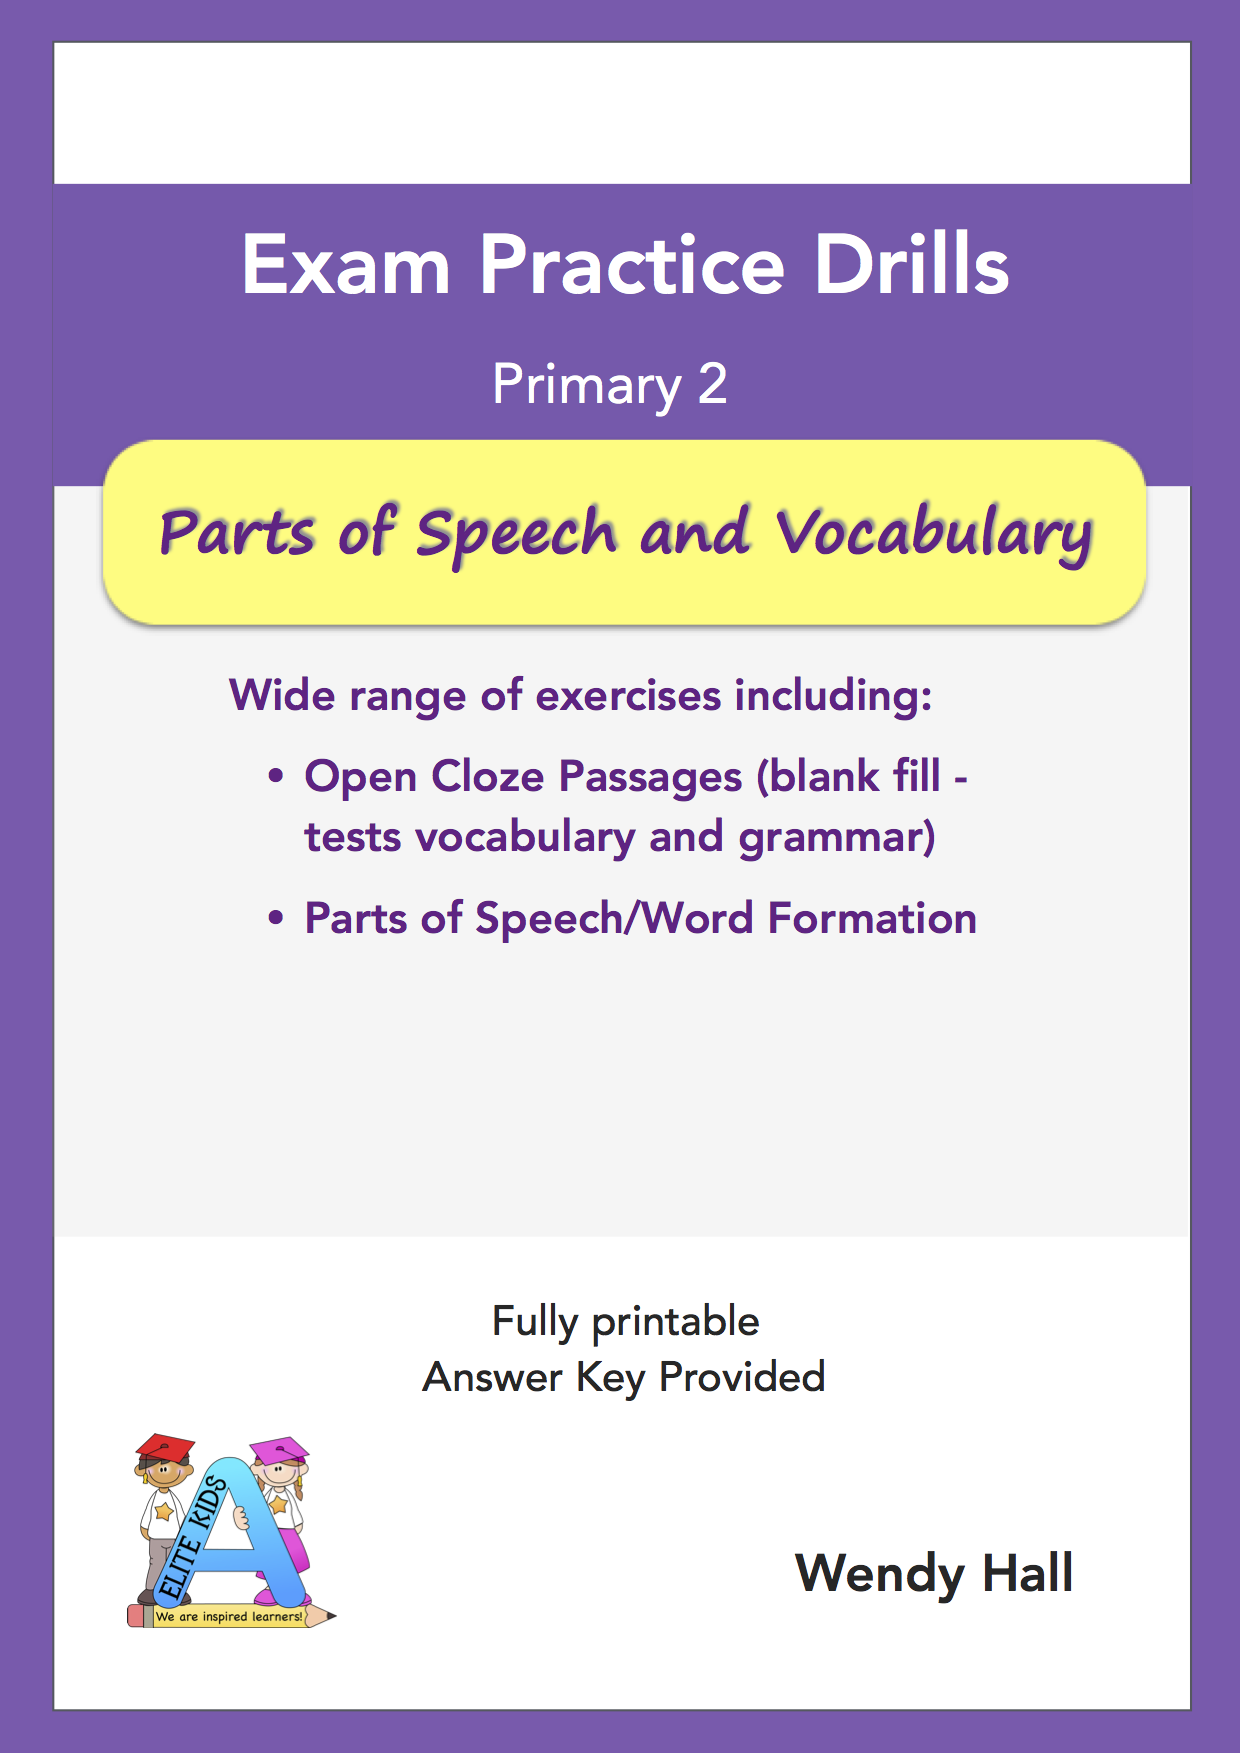 Elite Kids | Exam Practice Drills - Parts of speech and vocabulary - Primary 2